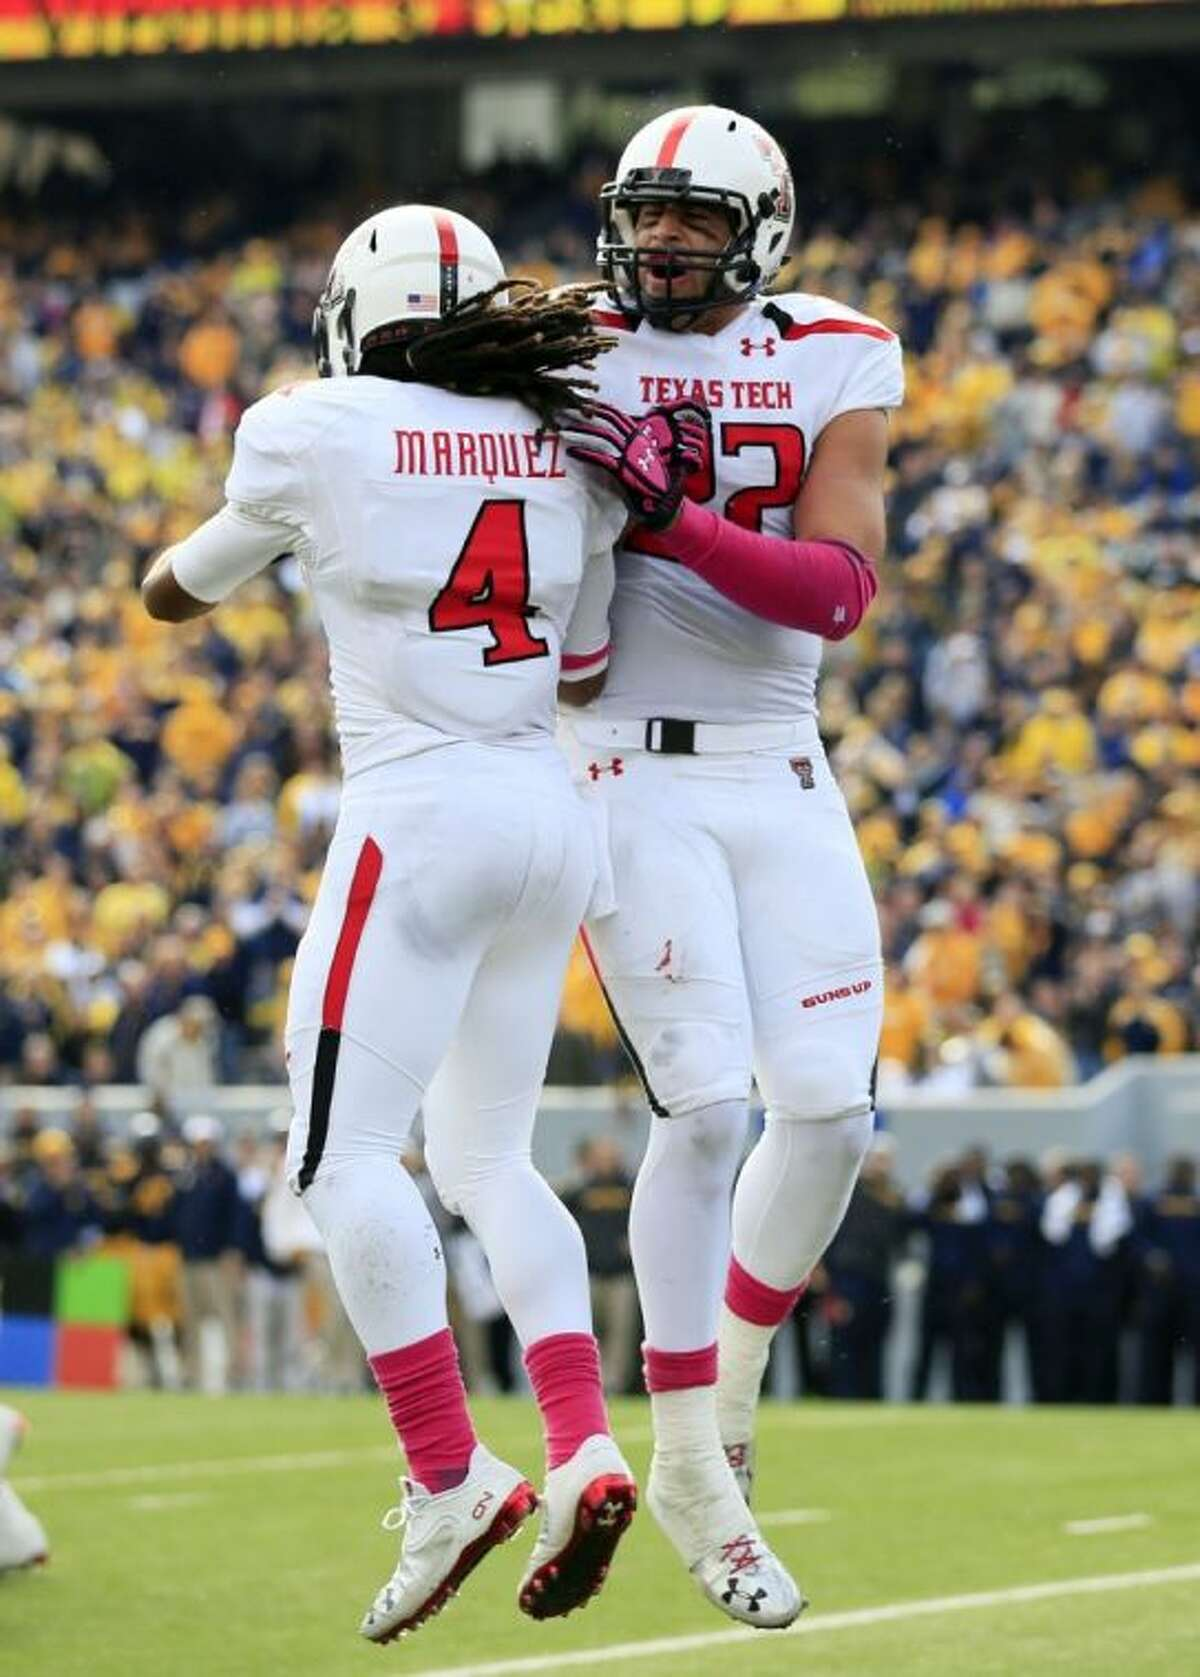 Texas Tech's Jace Amaro and Bradley Marquez (4) celebrate a touchdown during the third quarter against West Virginia on Saturday in Morgantown, W.Va. Texas Tech won 37-27.